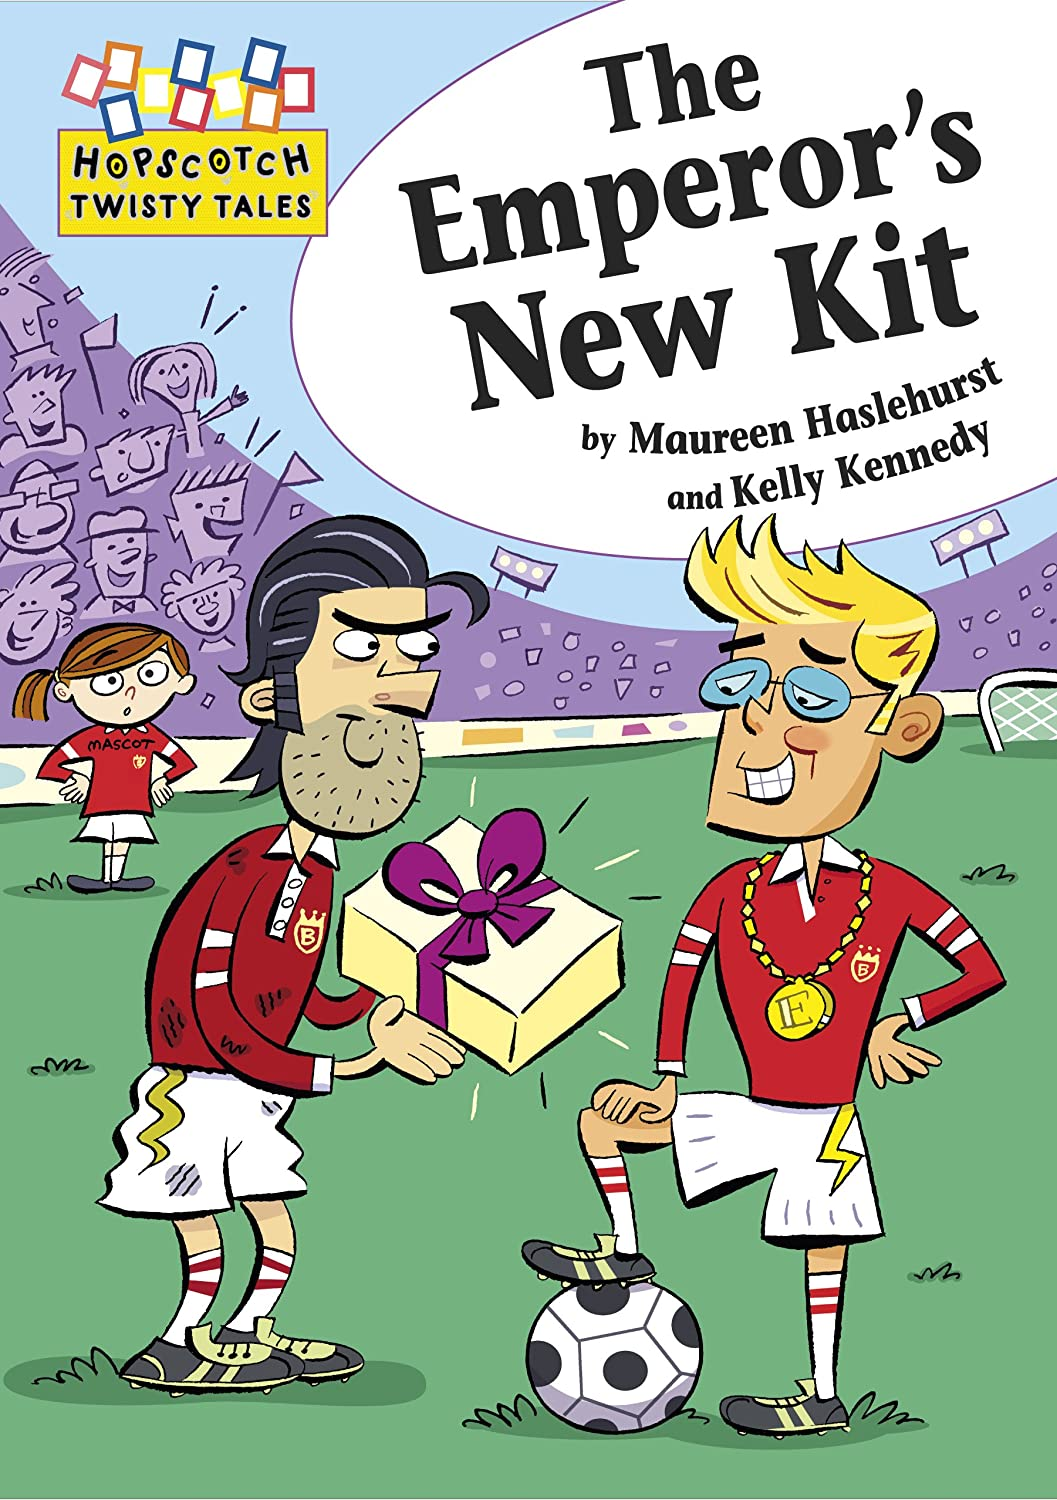 The Emperor's New Kit (Hopscotch Twisty Tales) Maureen Haslehurst and Kelly Kennedy